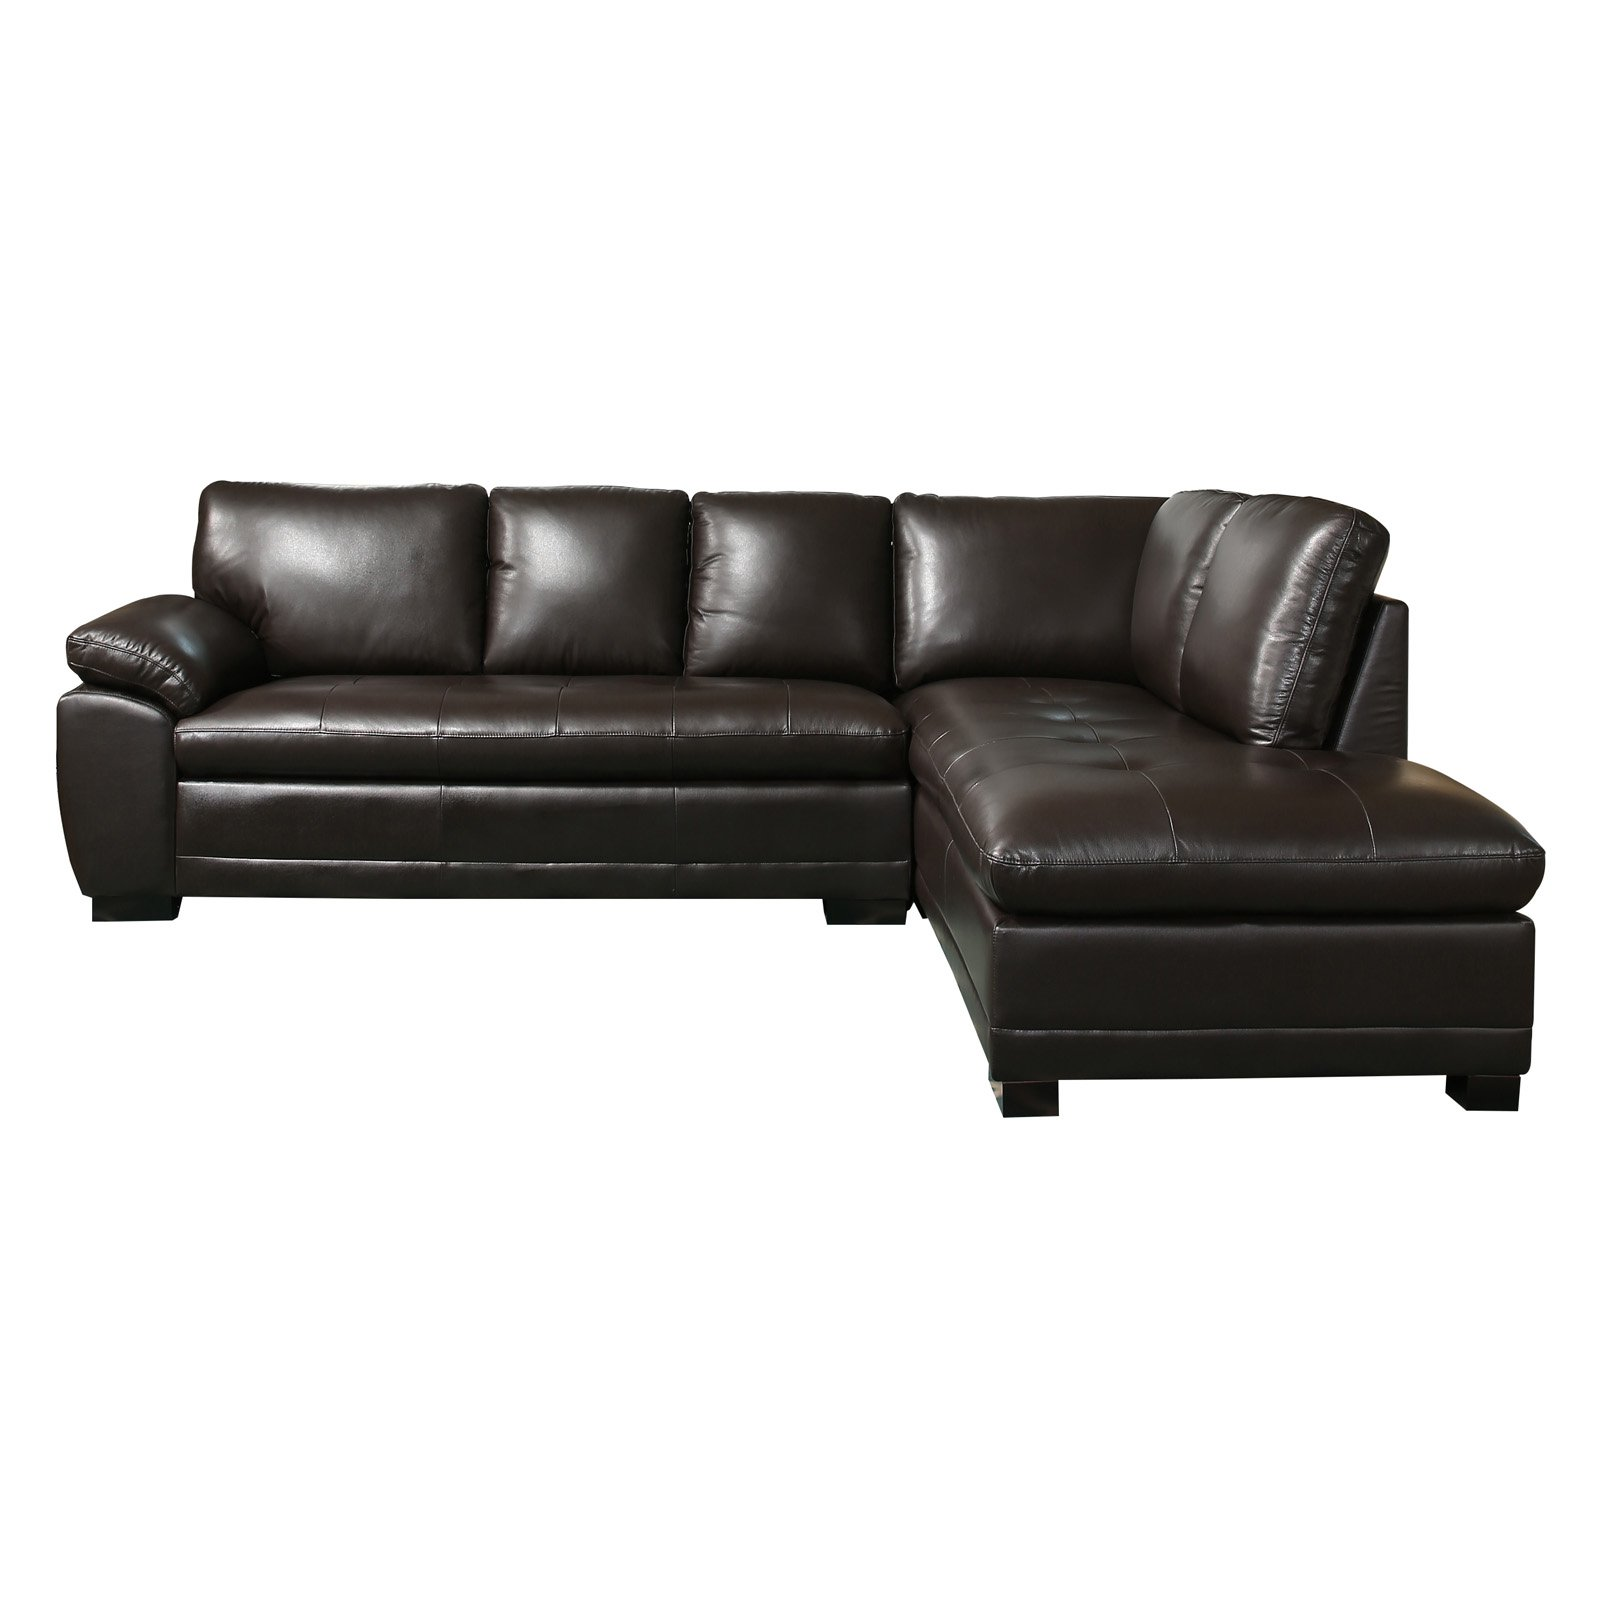 bd furniture and decor.htm leather sectional sofas walmart com  leather sectional sofas walmart com